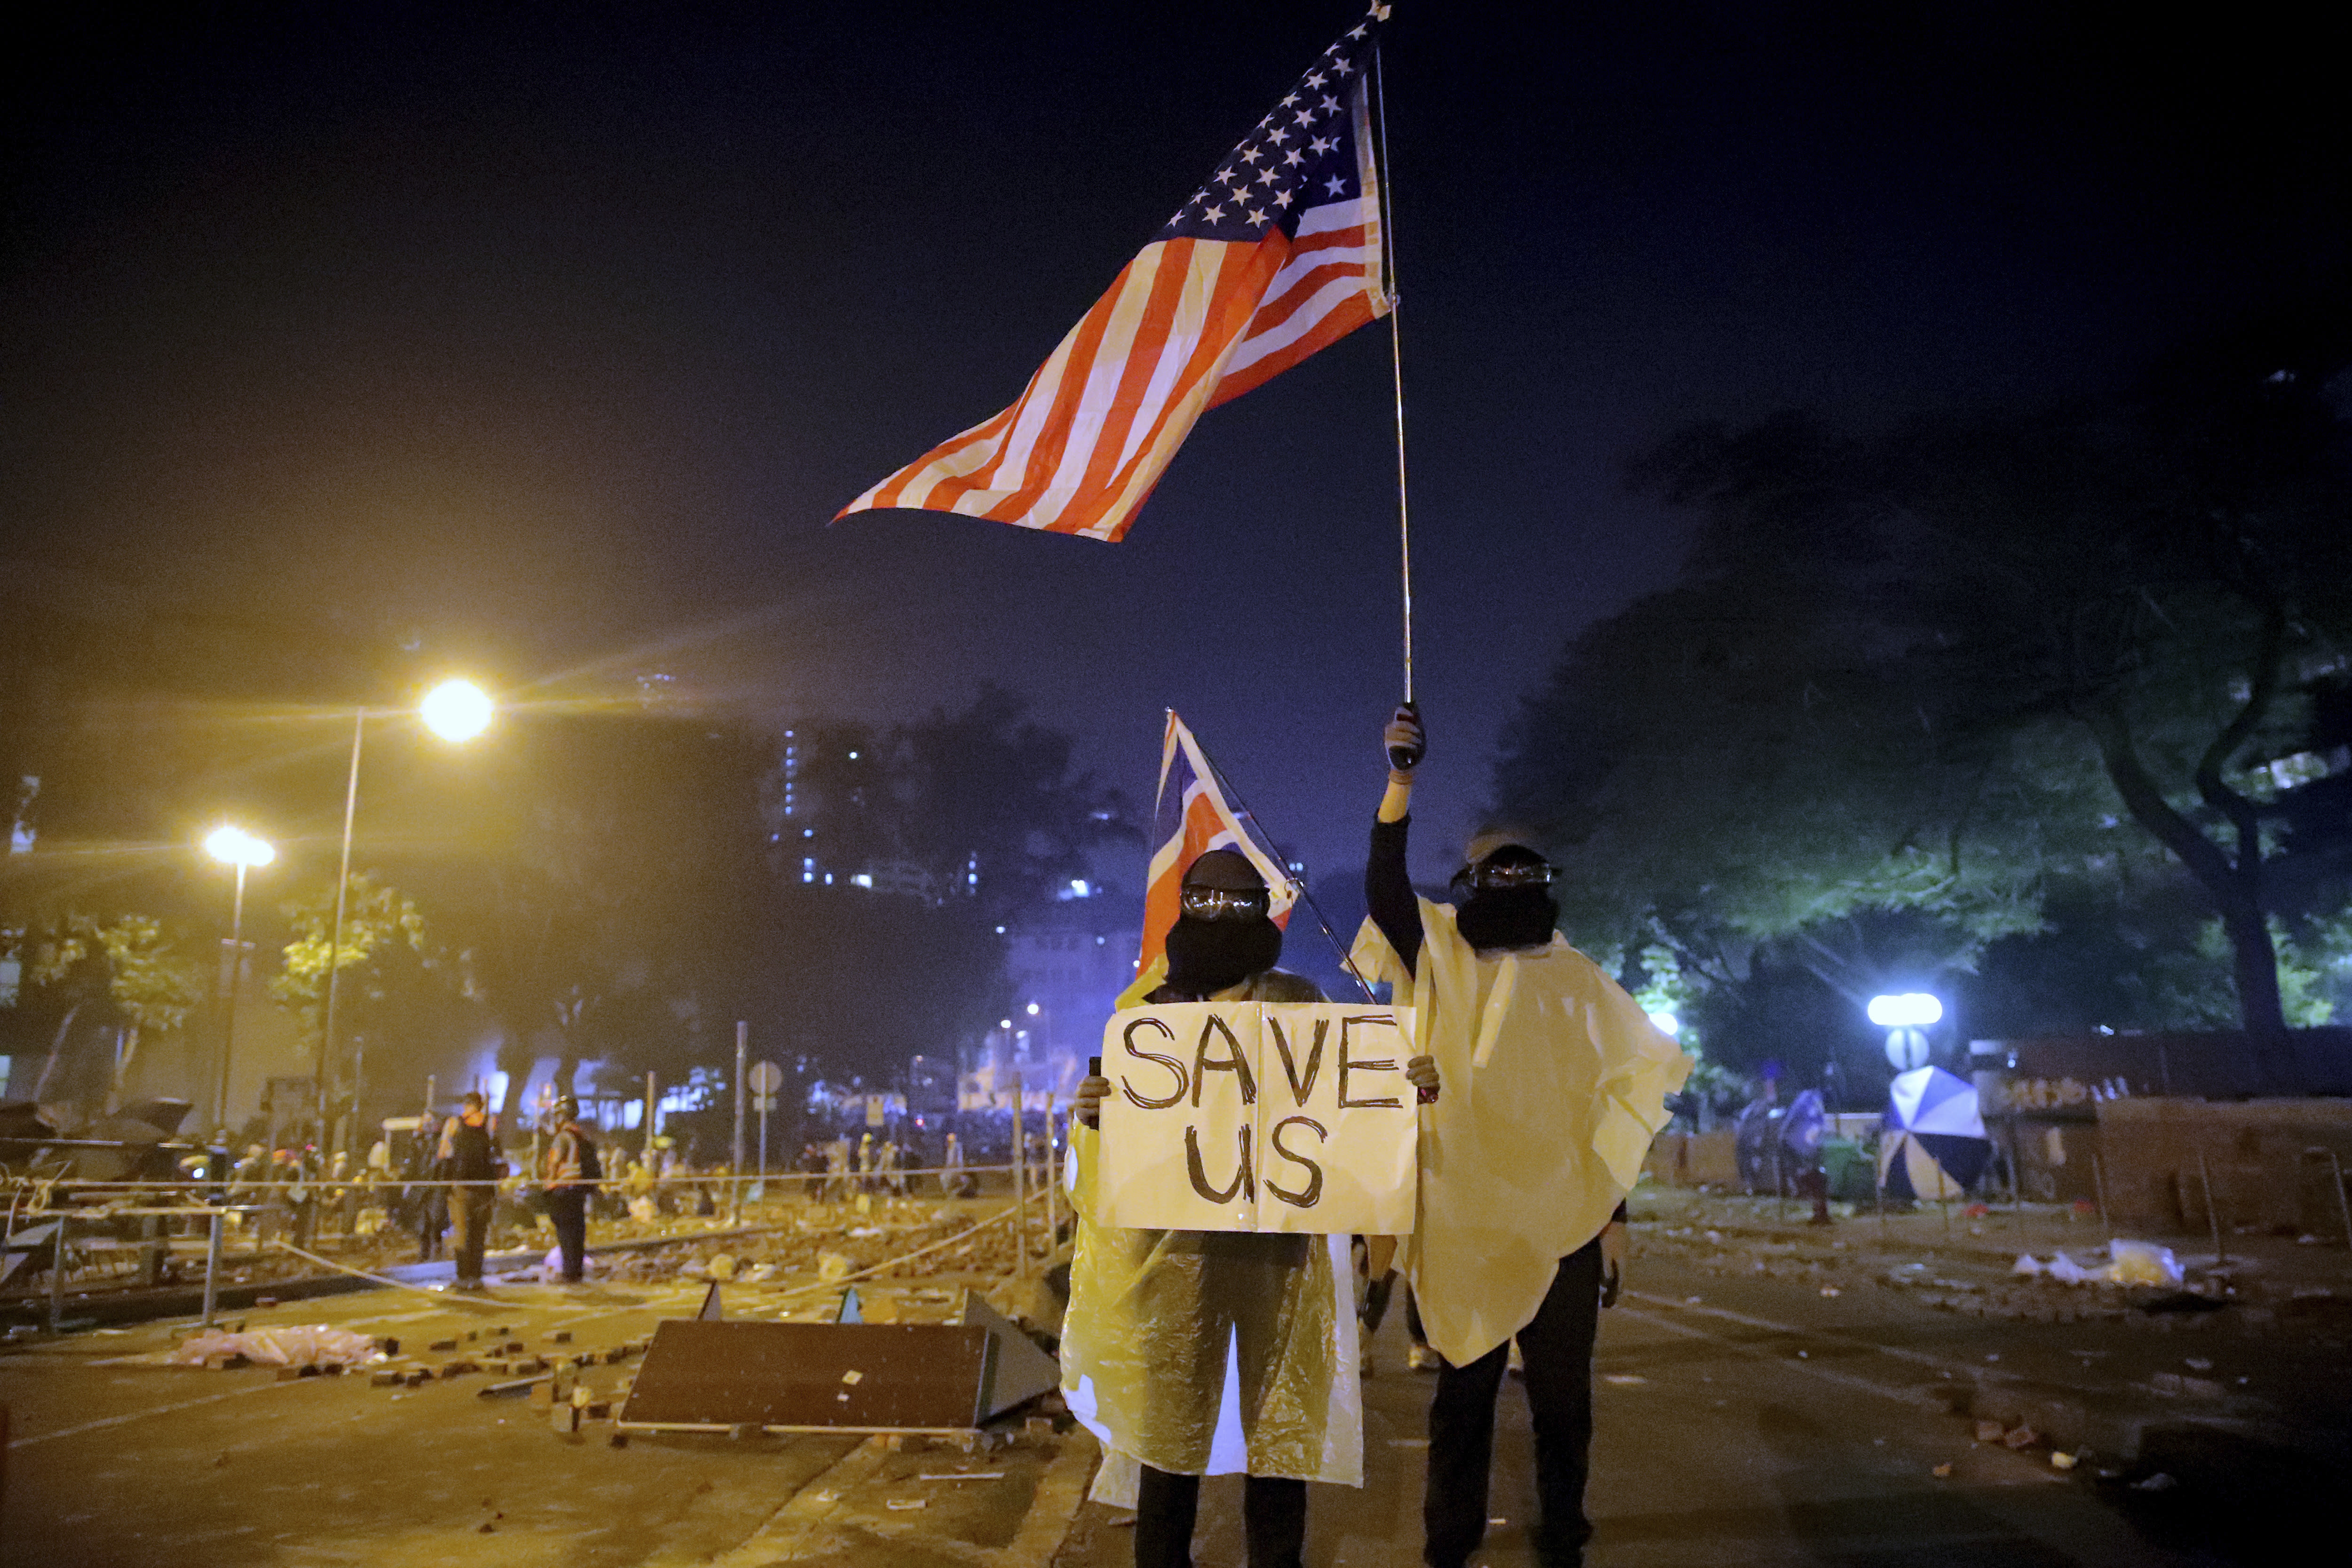 "FILE - In this Nov. 18, 2019, file photo, protesters hold British and American flags and a sign reading ""Save us"" as they stand near Hong Kong Polytechnic University after police gave protesters an ultimatum to leave the campus in Hong Kong. From Tokyo to Brussels, political leaders have swiftly decried Beijing's move to impose a tough national security law on Hong Kong that cracks down on subversive activity and protest in the semi-autonomous territory. But the rhetoric from democratic nations has more bark than bite. (AP Photo/Kin Cheung, File)"